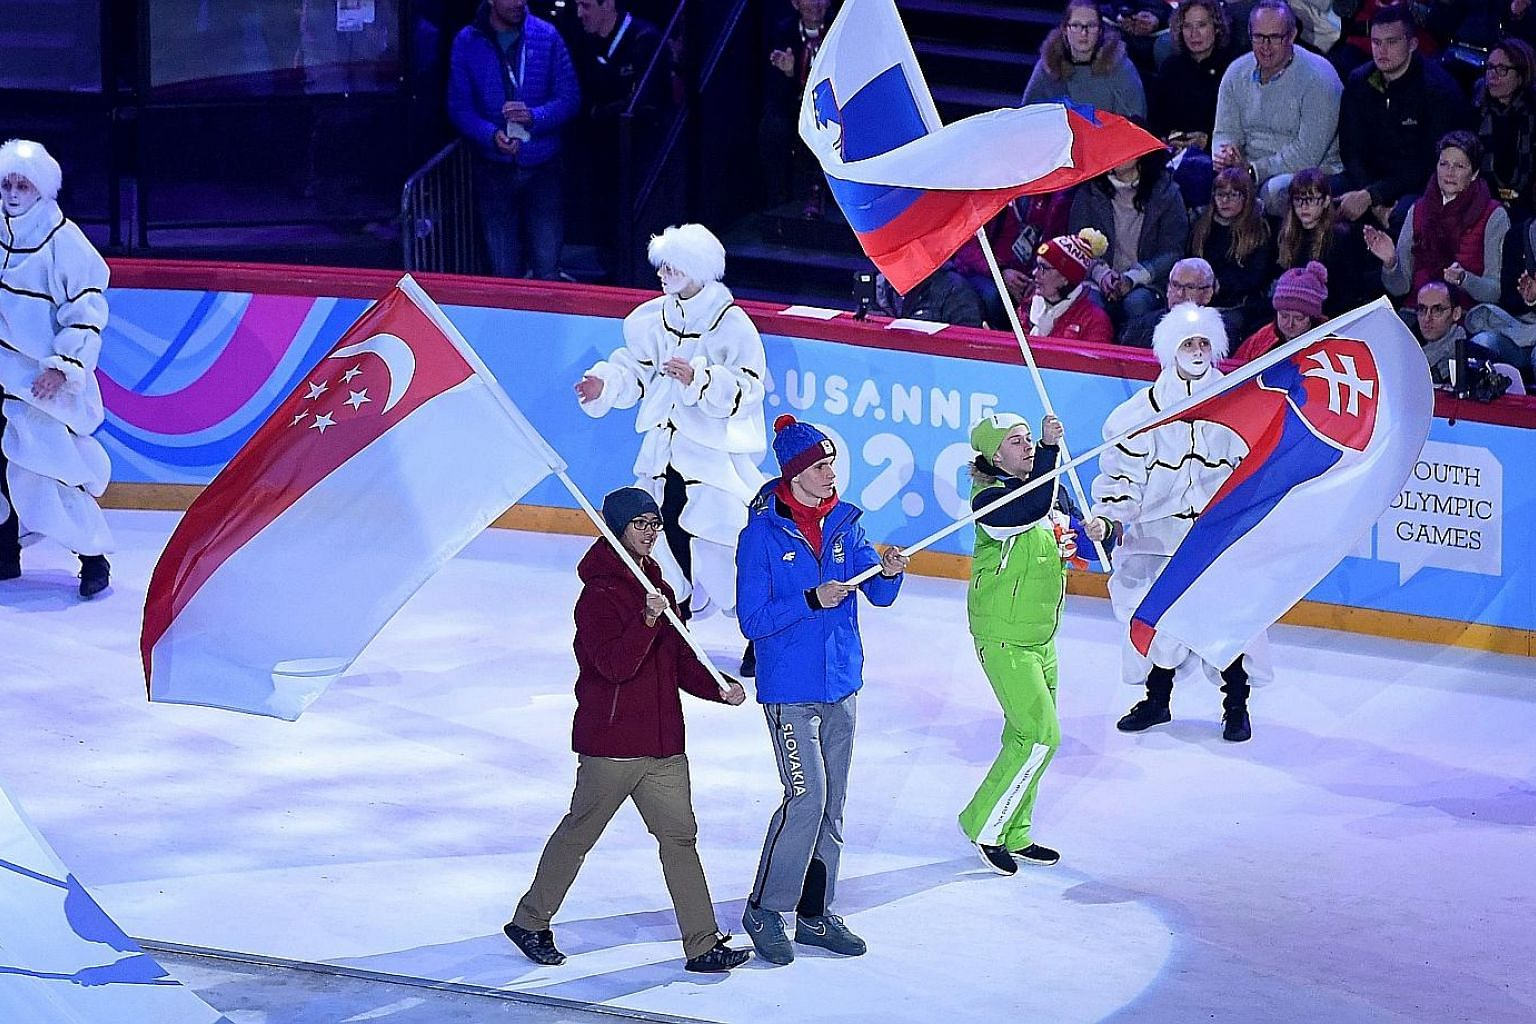 The Winter Youth Olympic Games began in Lausanne, Switzerland, on Thursday, with ice hockey player Matthew Hamnett (far left) representing Singapore at the opening ceremony at the Vaudoise Arena. Two other Singaporeans, short track speed skaters Alys